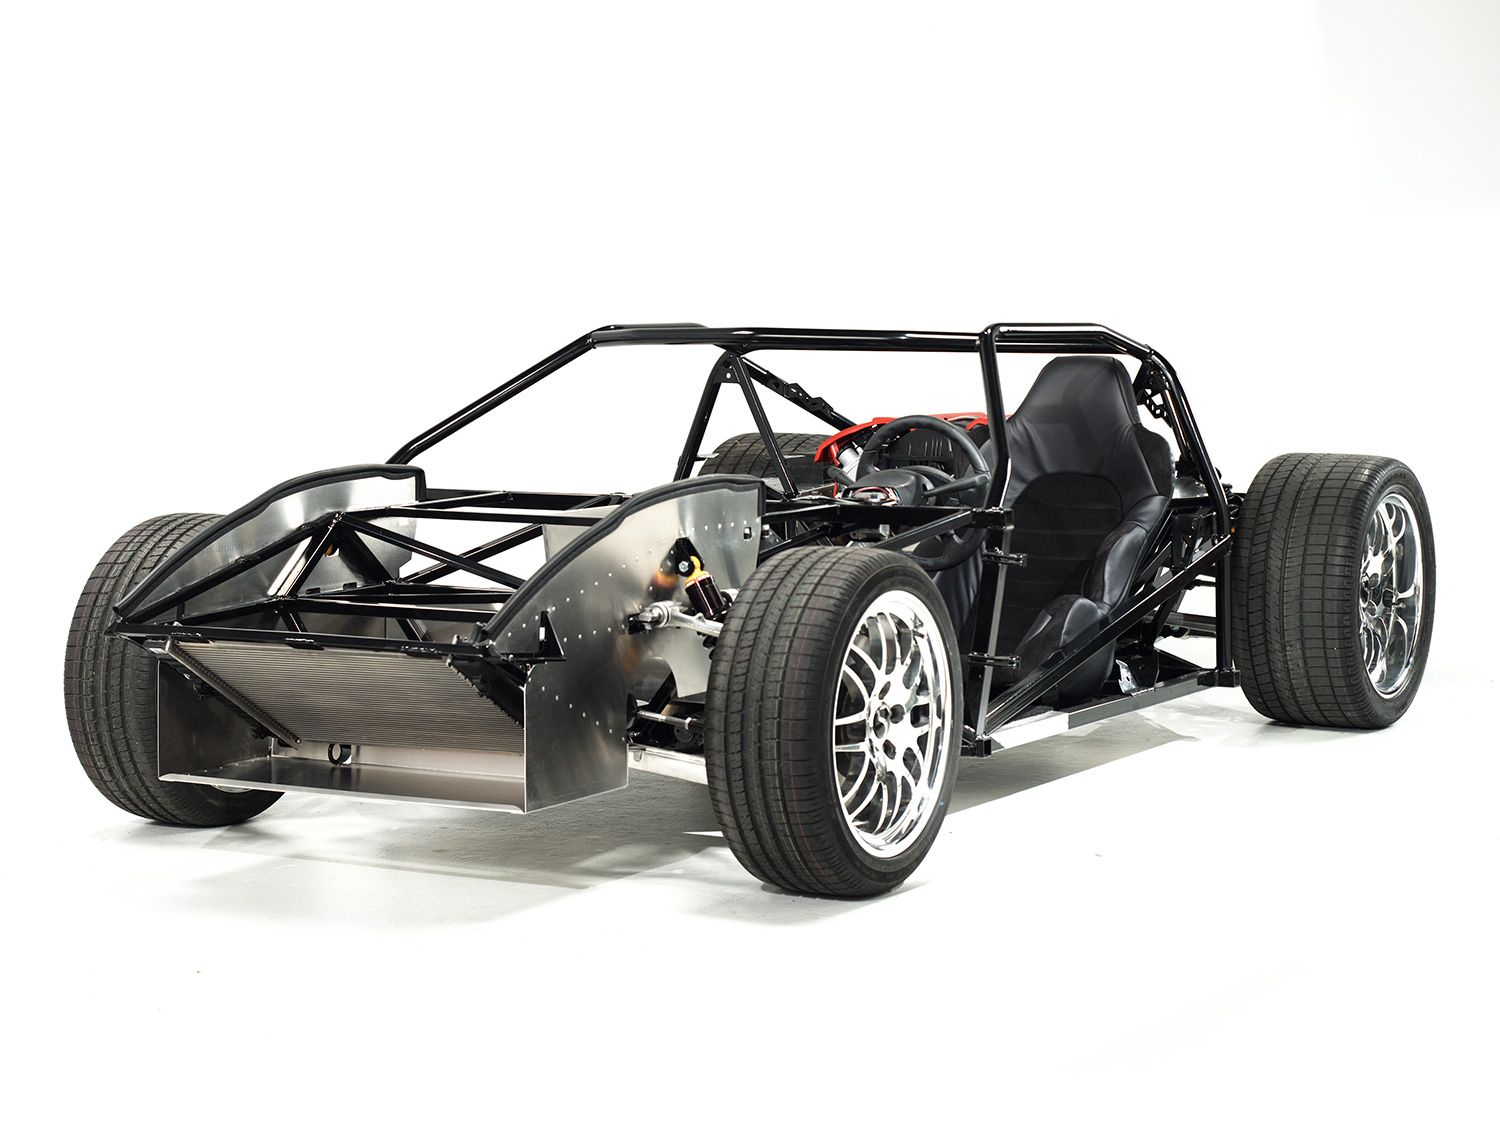 GTM Rolling Chassis - Factory Five Racing | Art works | Pinterest ...